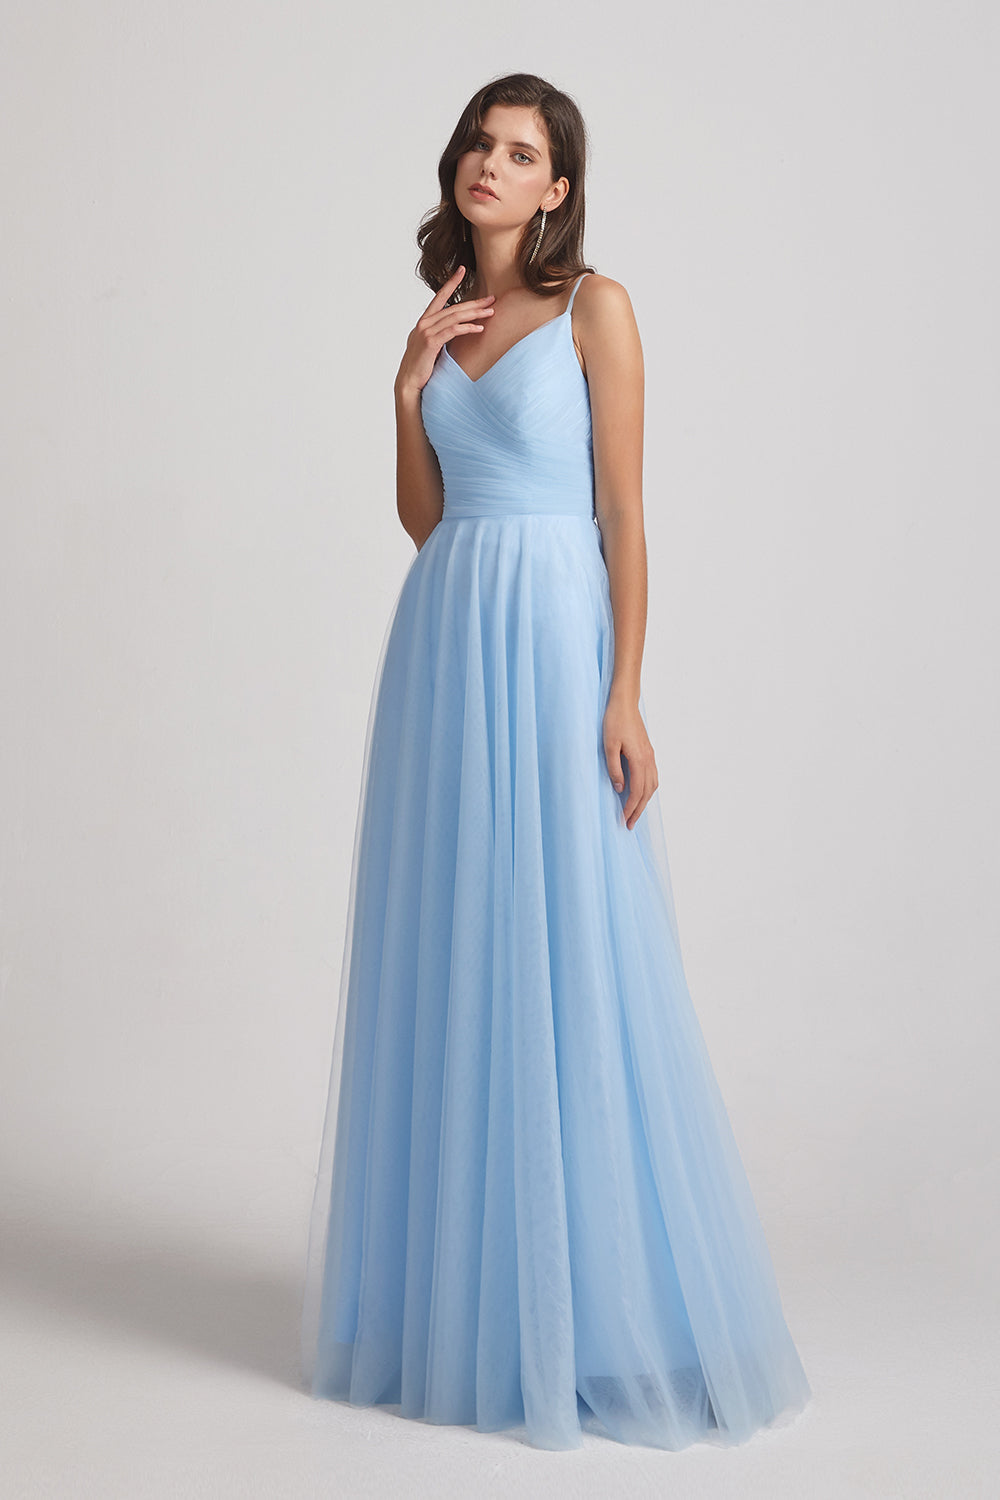 spaghetti straps long tulle bridesmaid gown